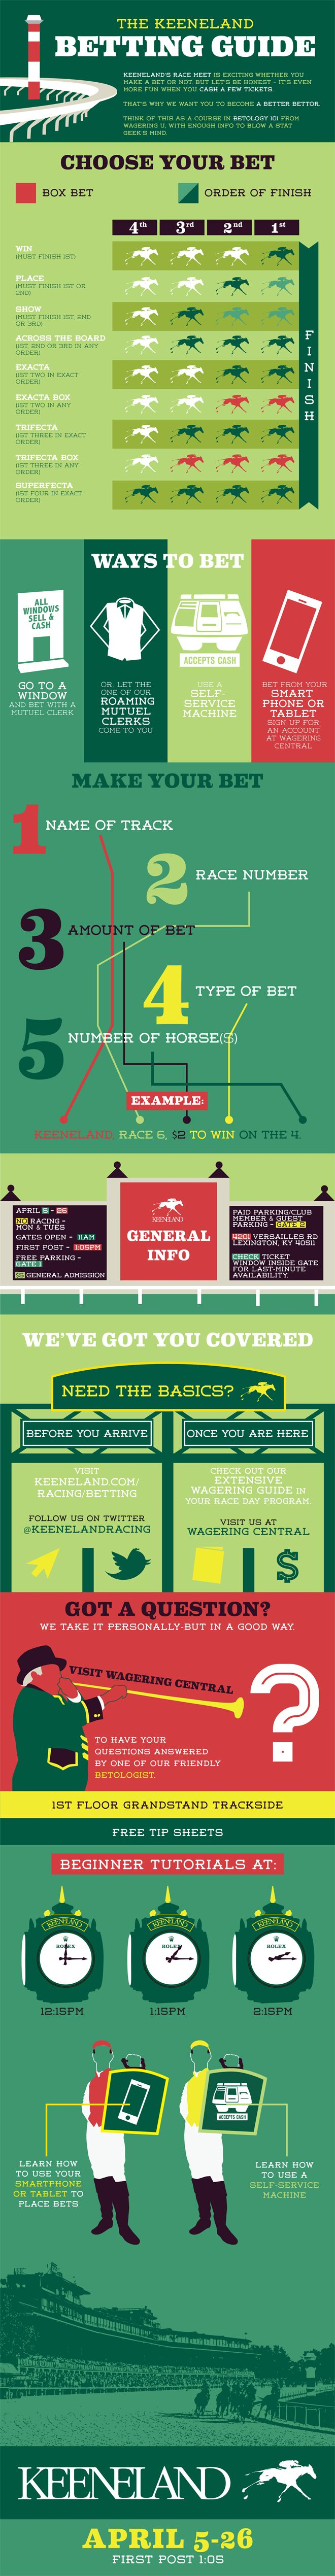 Think of this as a course in BETology 101 from Wagering U, with enough info to blow a stat geek's mind. #FortheWin